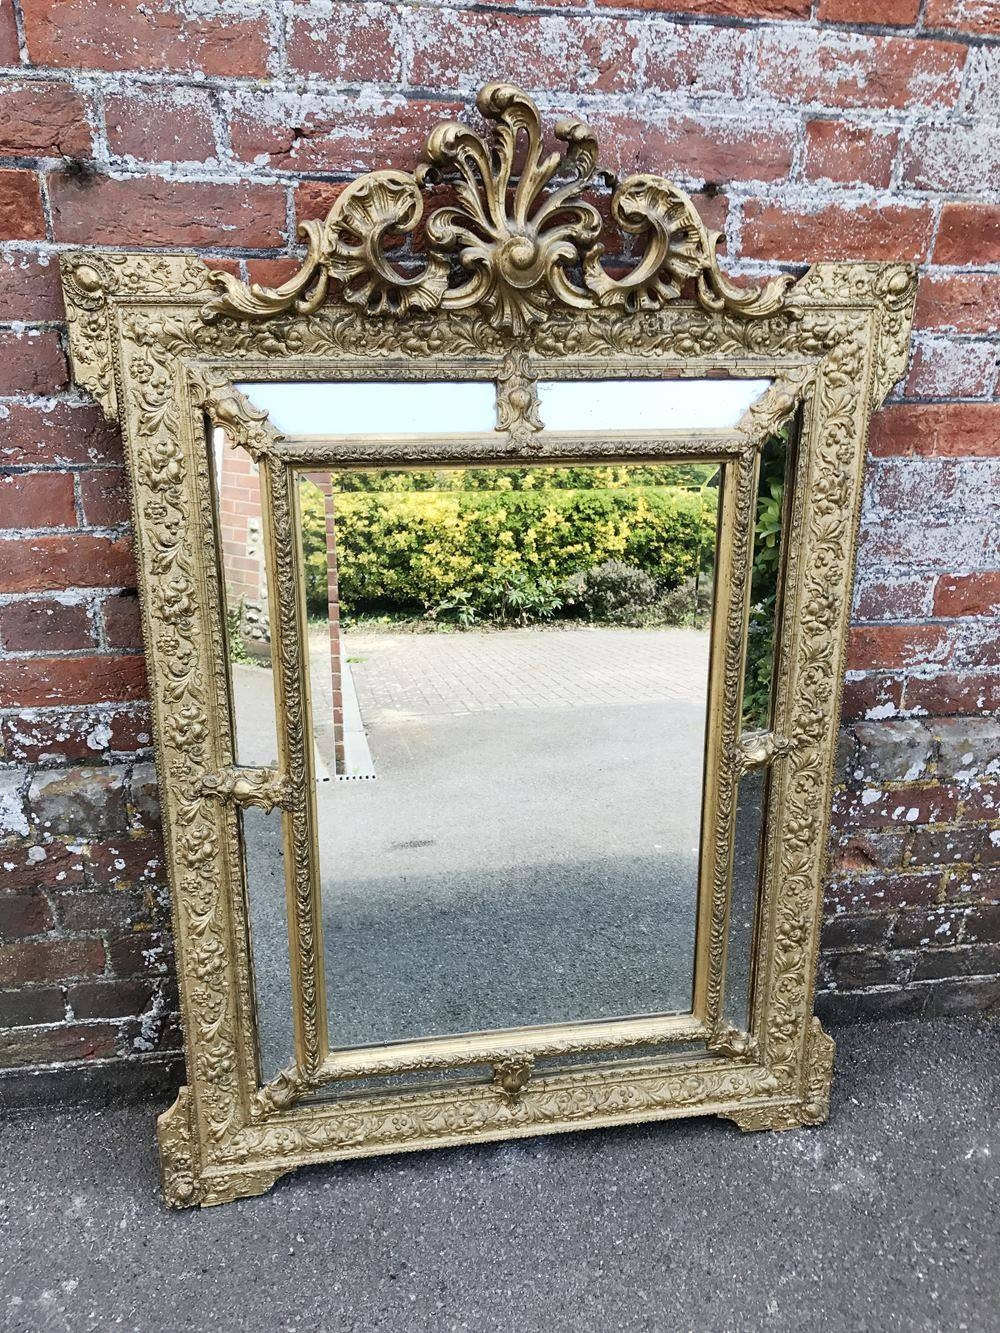 A Spectacular Good Size Antique 19Th Century French Carved Wood pertaining to Antique French Mirrors (Image 2 of 15)